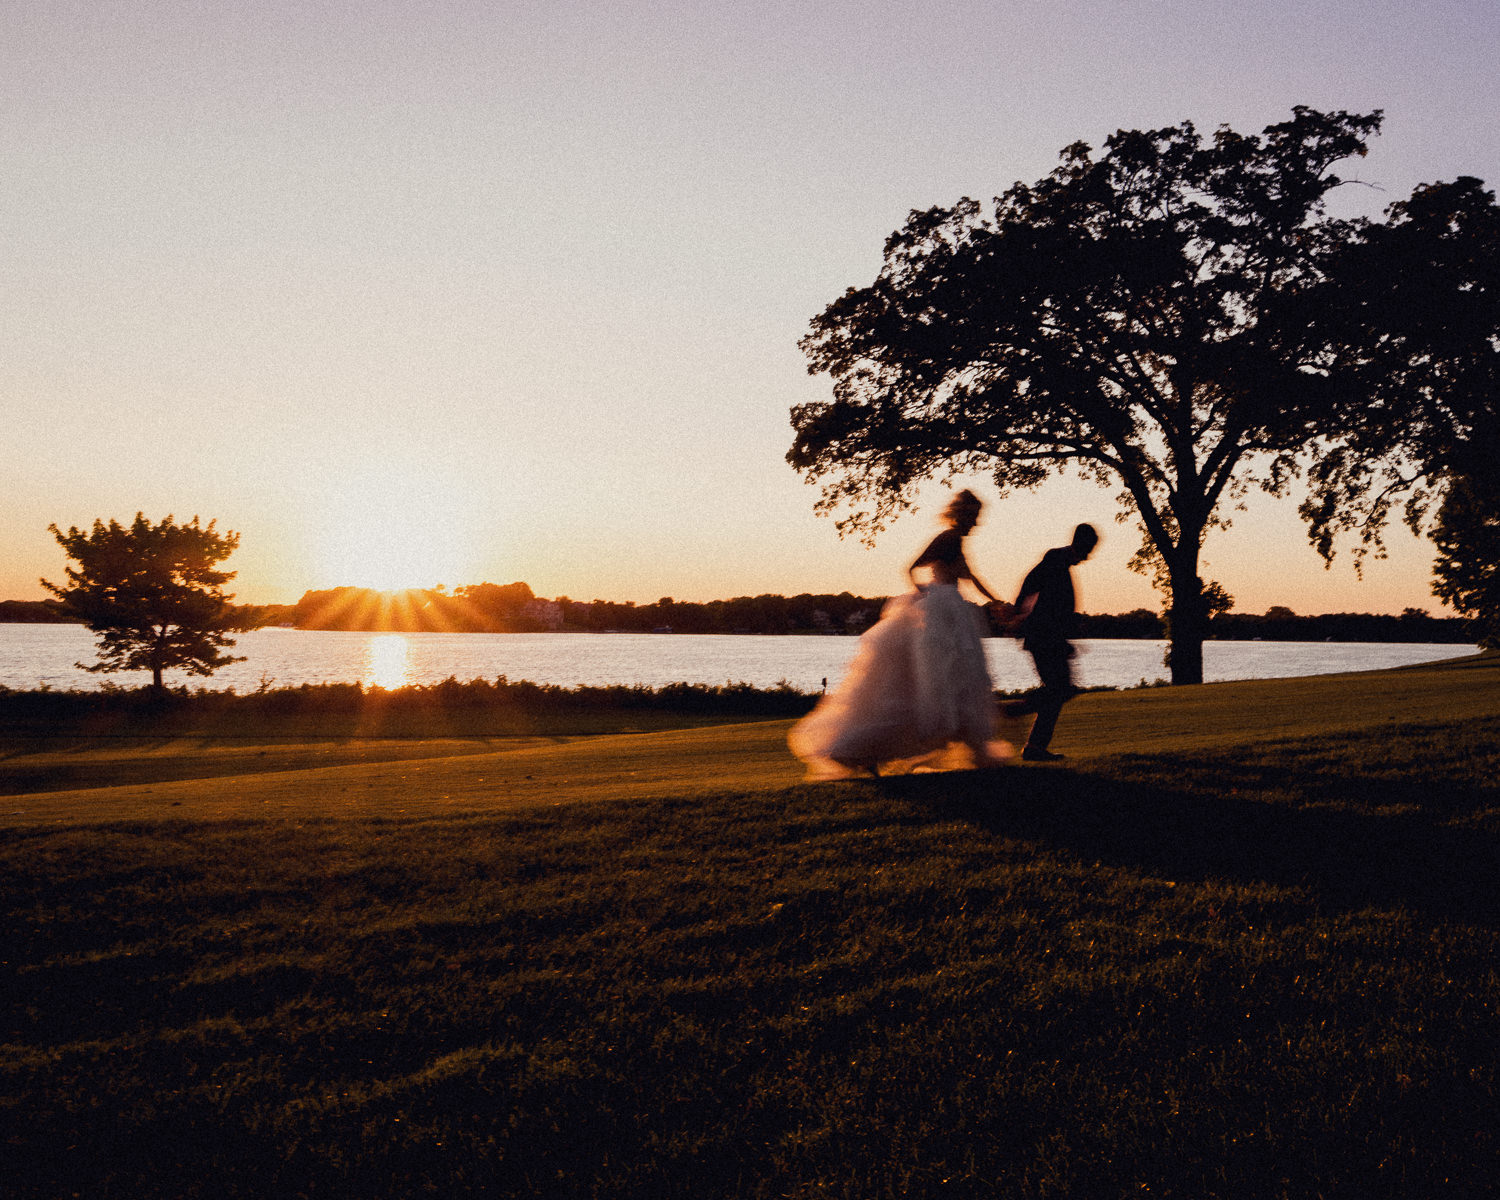 Collection 1 - $700012 hours of wedding day coverage8 hours of day before coverage+900 images delivered